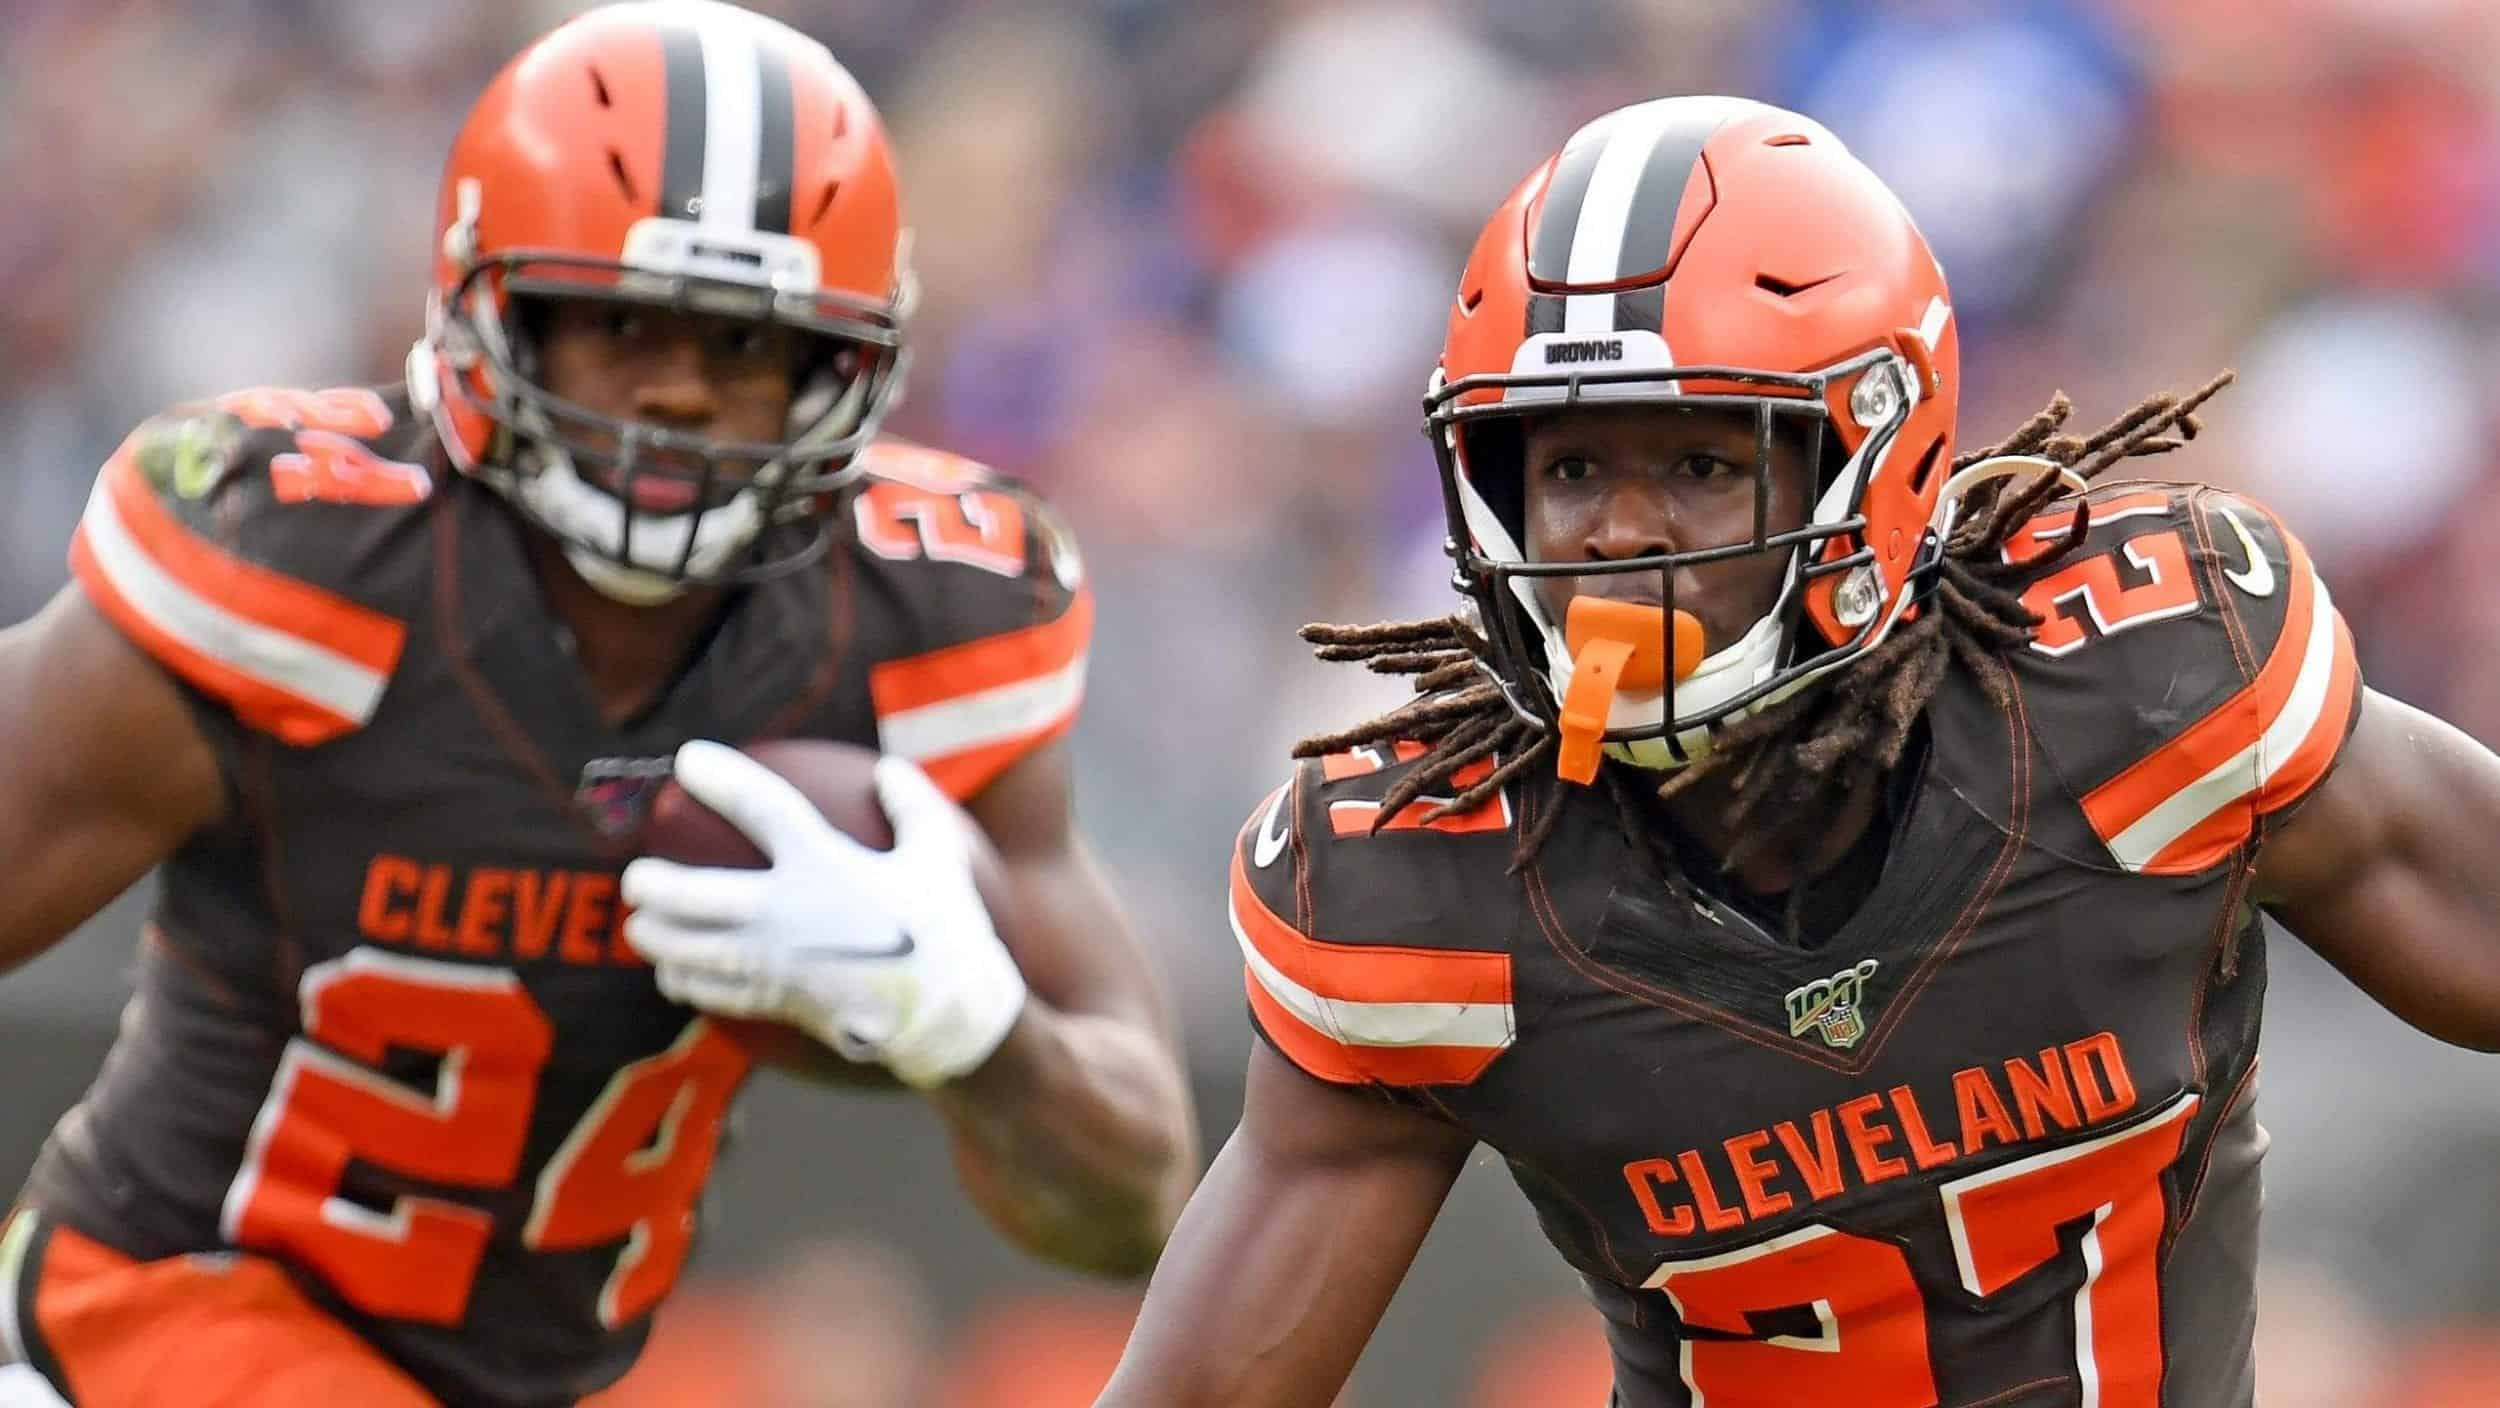 Cleveland Browns' 2020 playoff chances depend on the run game